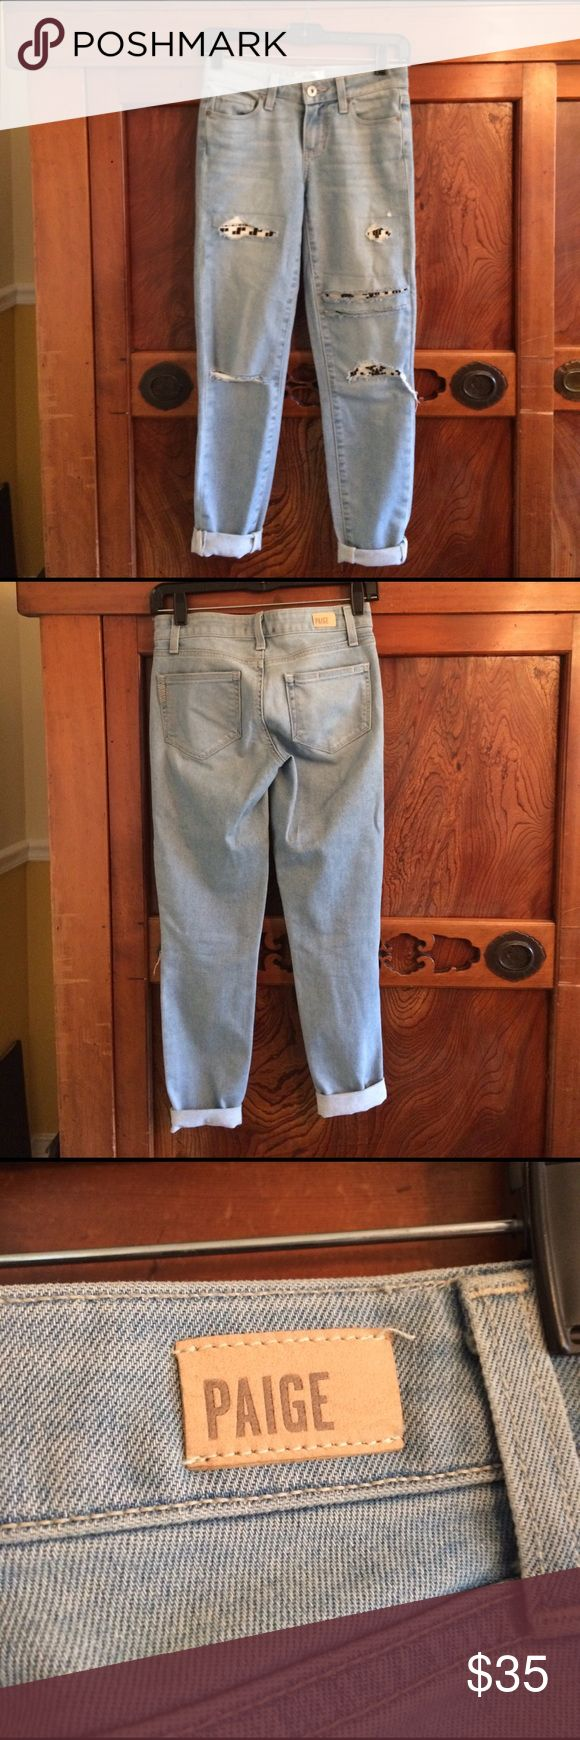 Paige ankle length distressed jeans sz 25 Light blue distressed ankle length jeans with patches sz 25 in excellent used condition Paige Jeans Jeans Ankle & Cropped